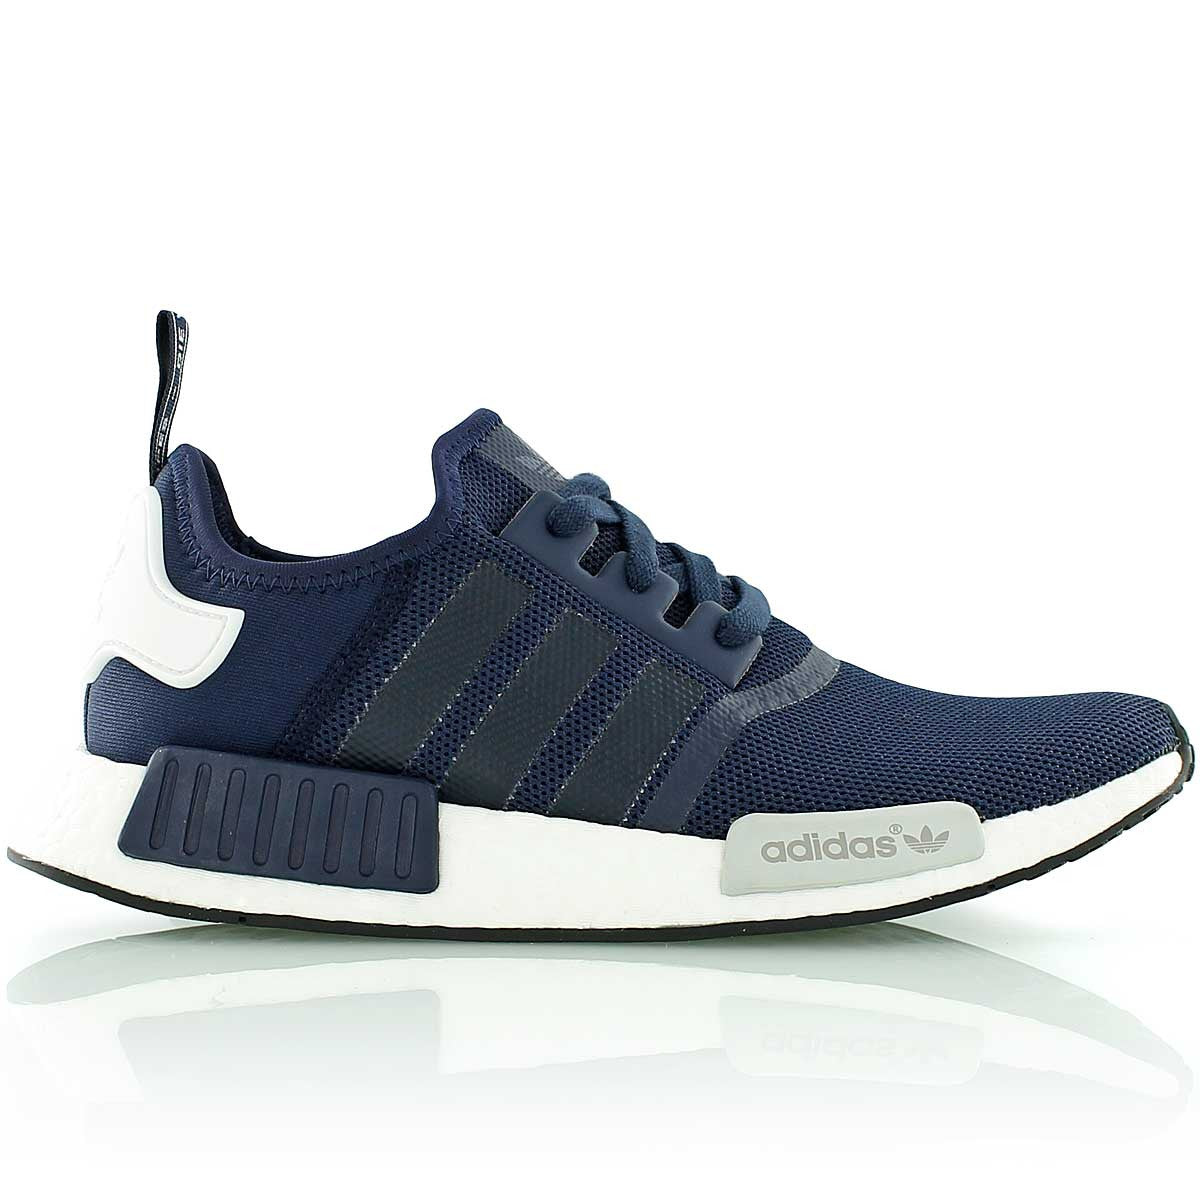 167363651 ... low cost adidas nmd runner conavy ds 9.5 76c7e 91628 ...